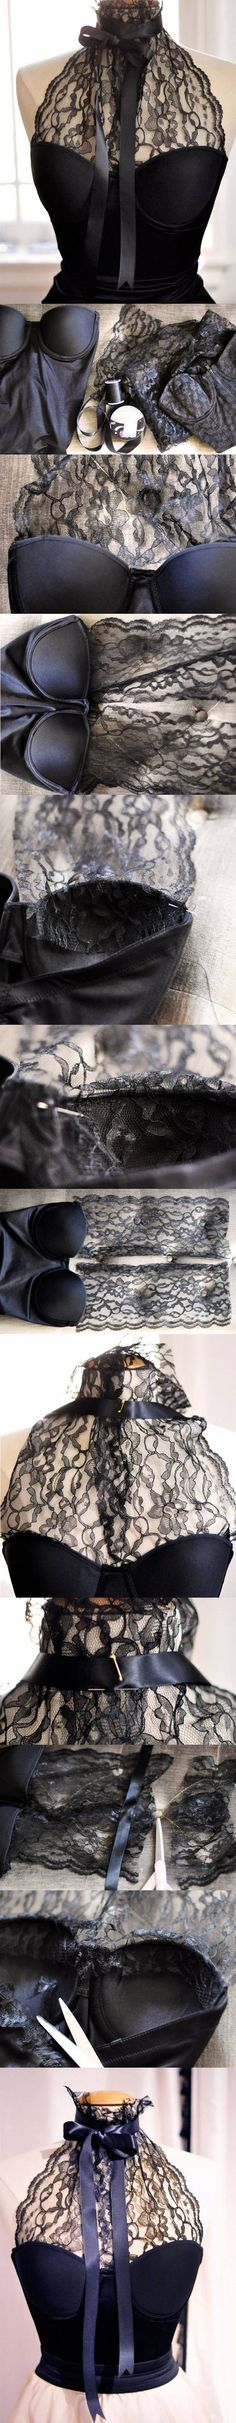 Definately will try to make this DIY LACE HALTER BUSTIER craft crafts craft ideas easy crafts diy ideas diy crafts diy clothes easy diy fun diy diy shirt craft clothes craft fashion craft shirt fashion diy Clothes Crafts, Sewing Clothes, Diy Fashion, Womens Fashion, Fashion Design, Fashion Goth, Dress Fashion, Fashion Ideas, Fashion Trends